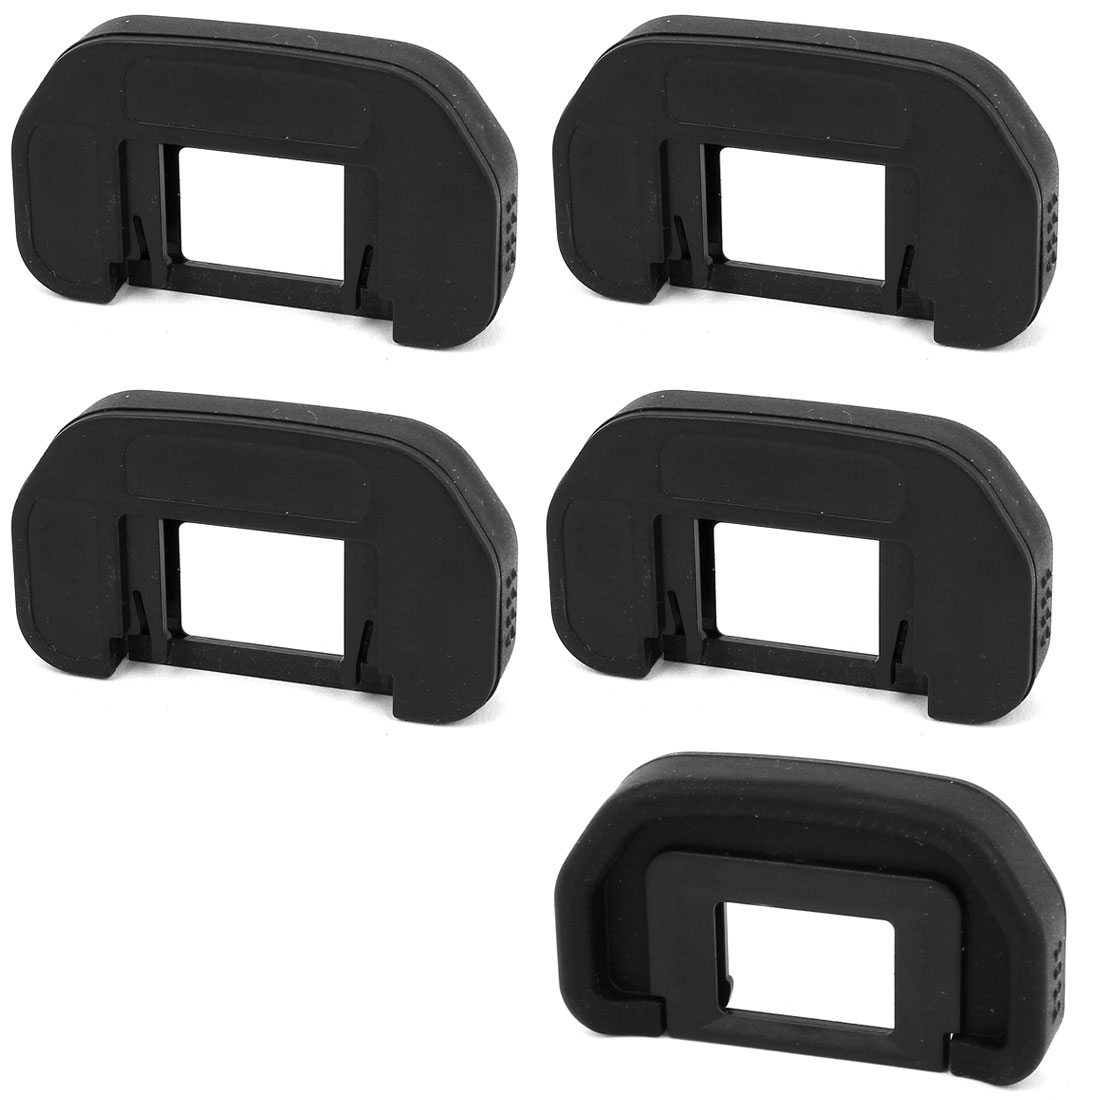 5pcs Eyepiece Eye Cup EB for Canon EOS 10D 20D 30D 40D 50D DSLR Digital Camera